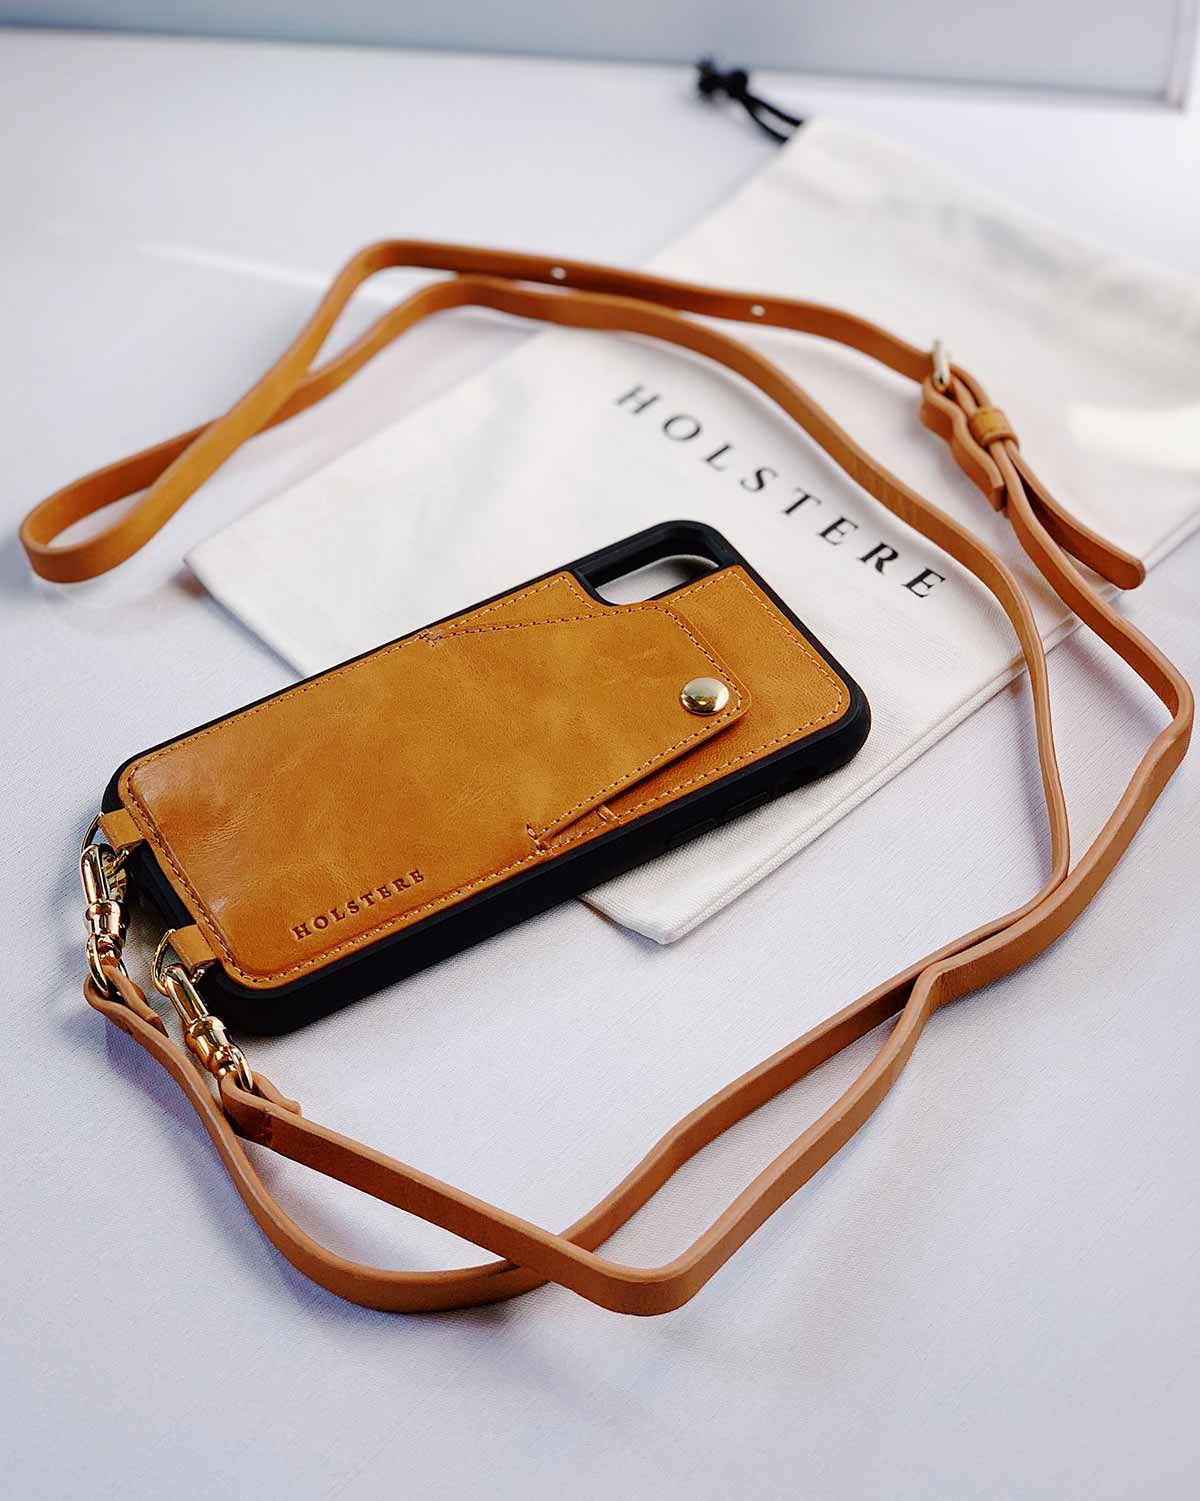 Holstere iPhone Case Crossbody - The London (Tan)